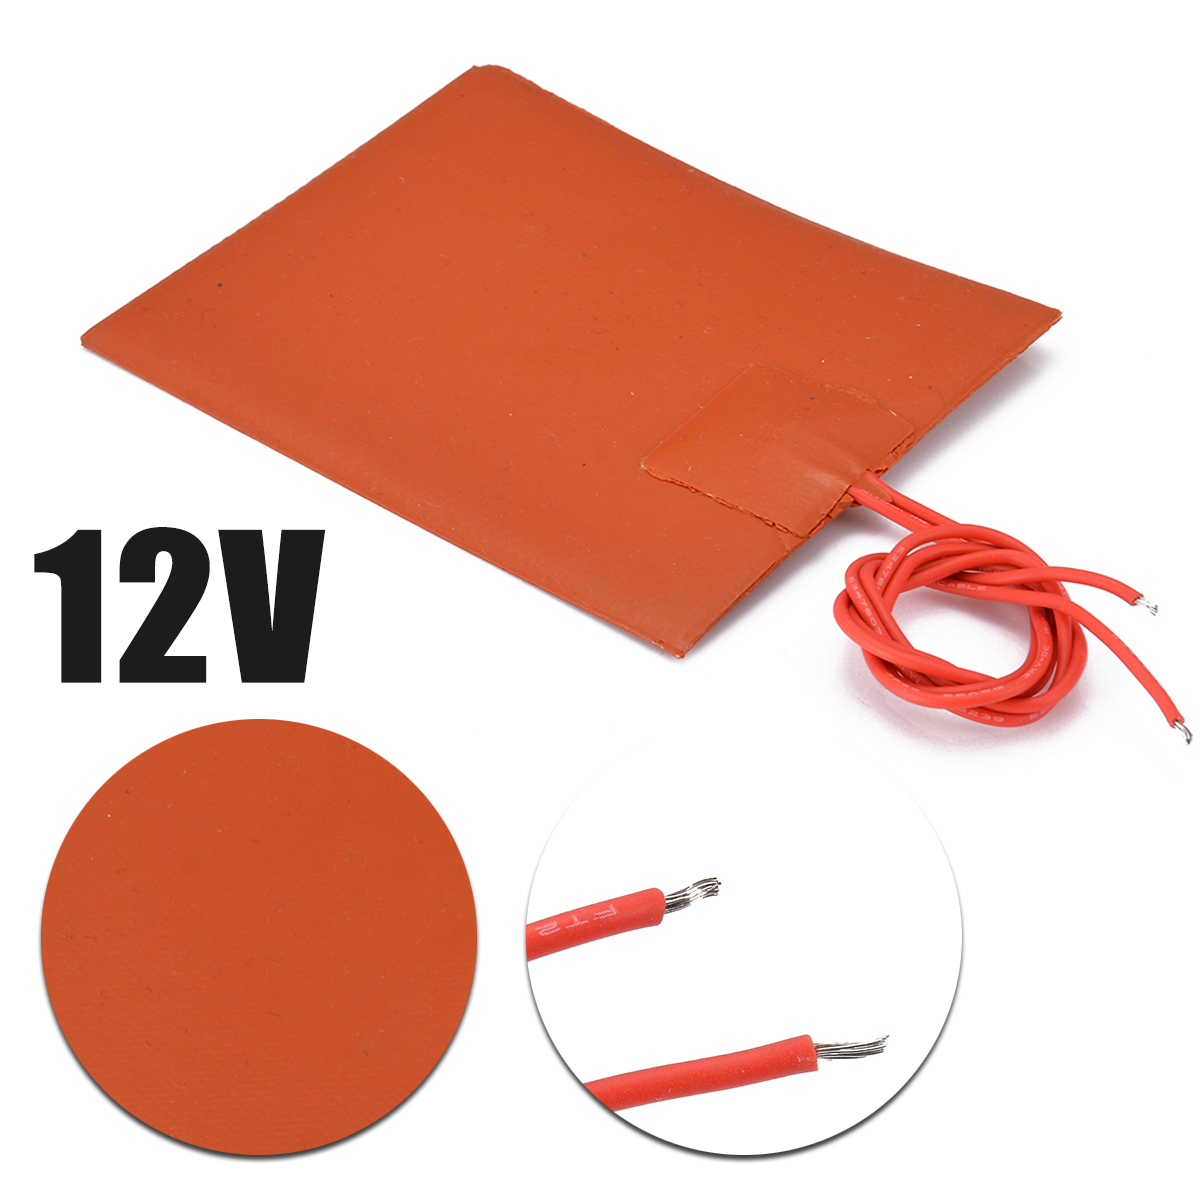 80x100mm 12V DC 20W Flexible Waterproof Silicone Heater Bed Pad For 3D Printer Heat Bed Electric Pads Red|Electric Heating Pads| |  - title=